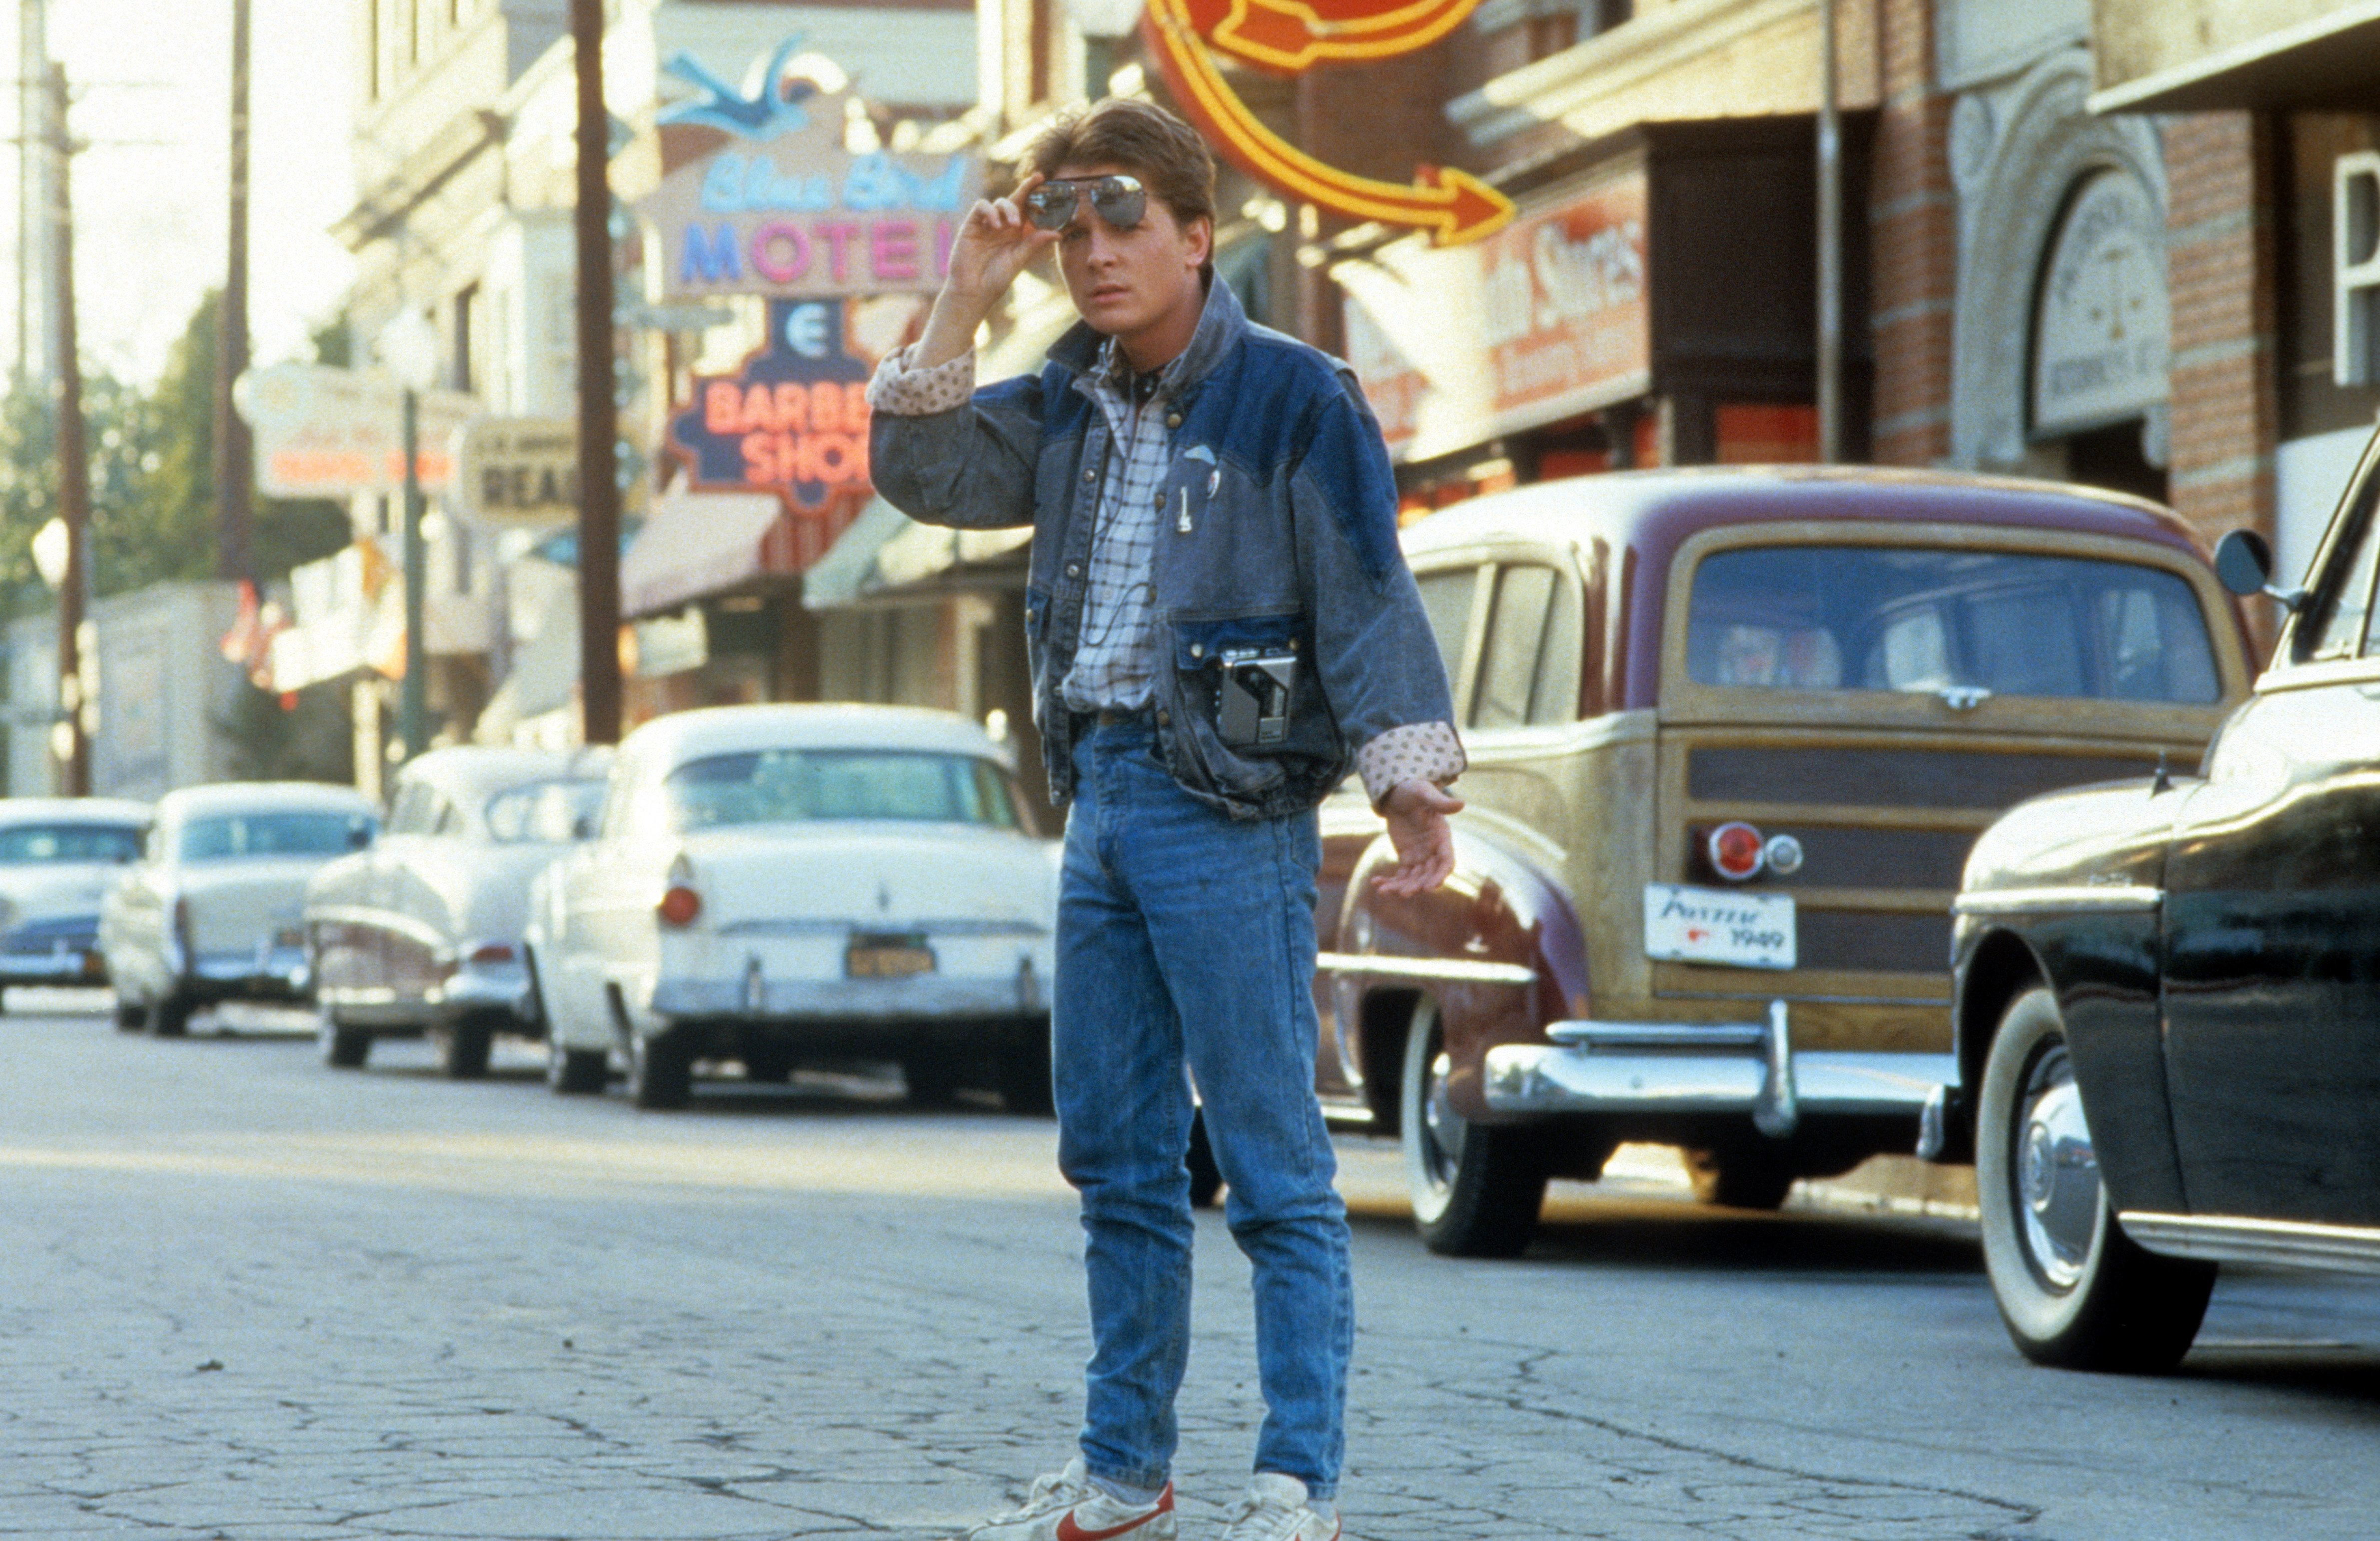 Michael J Fox walking across the street in a scene from the film 'Back To The Future', 1985. (Photo by Universal/Getty Images)